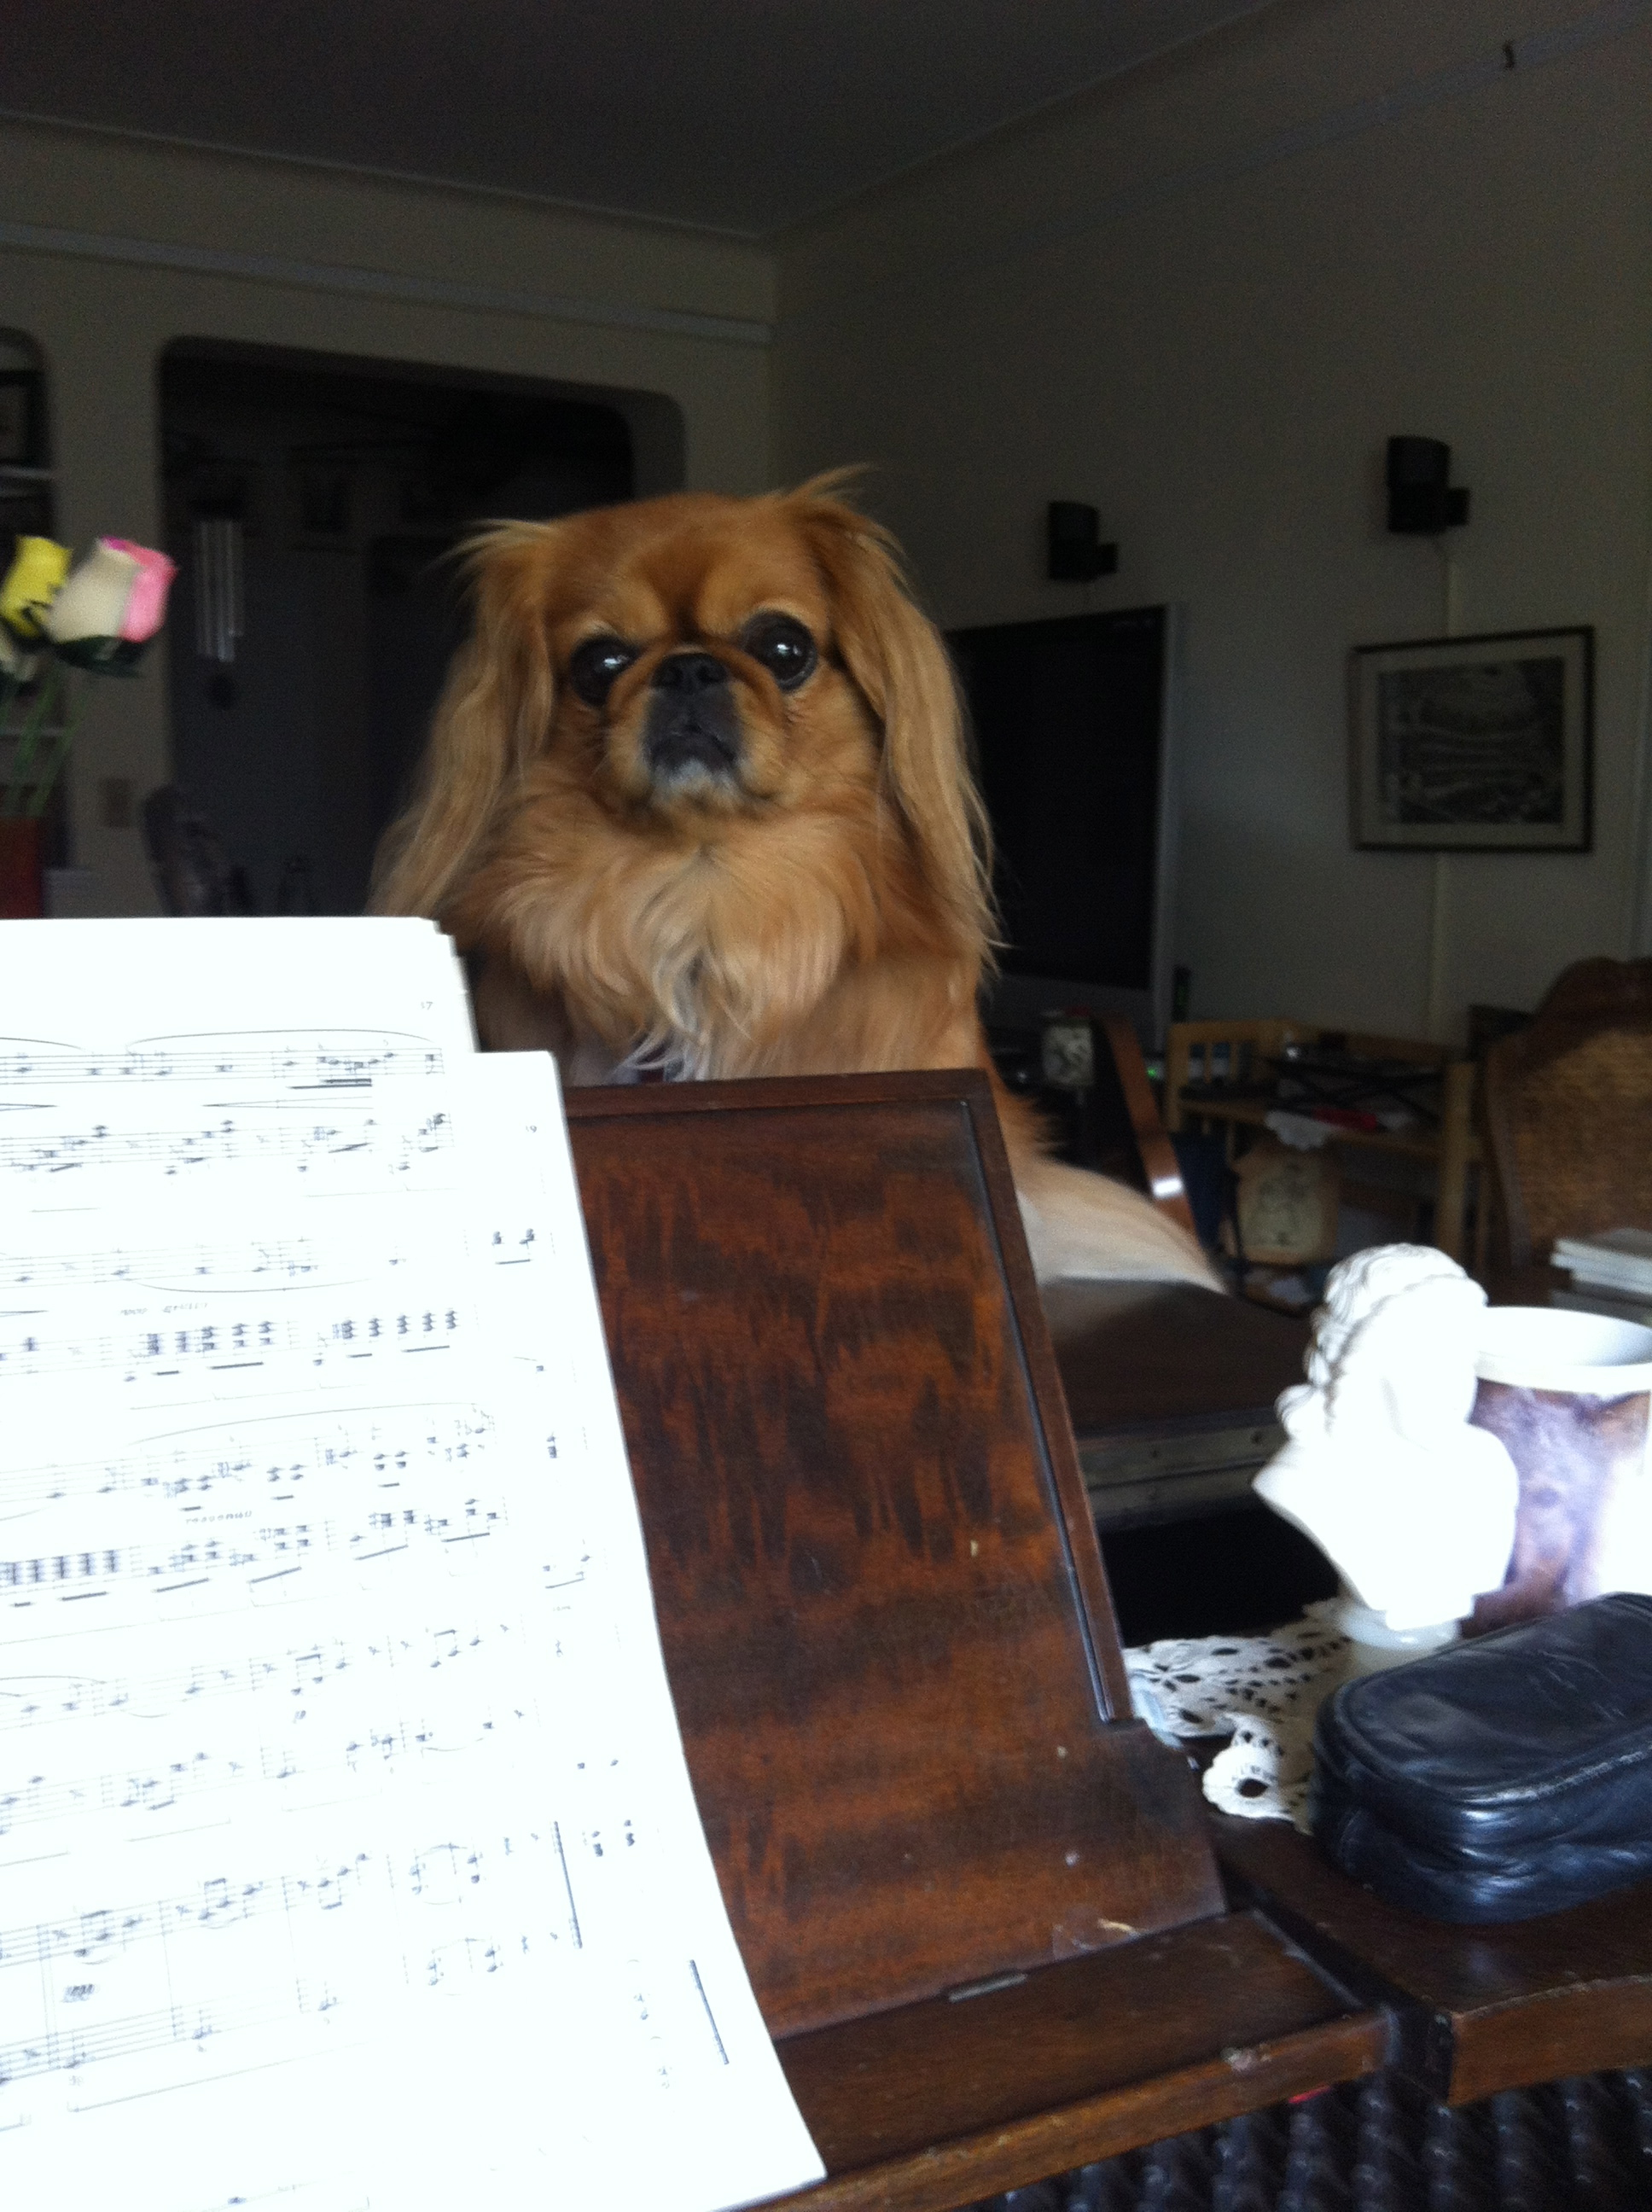 I am still here listening to your Chopin!